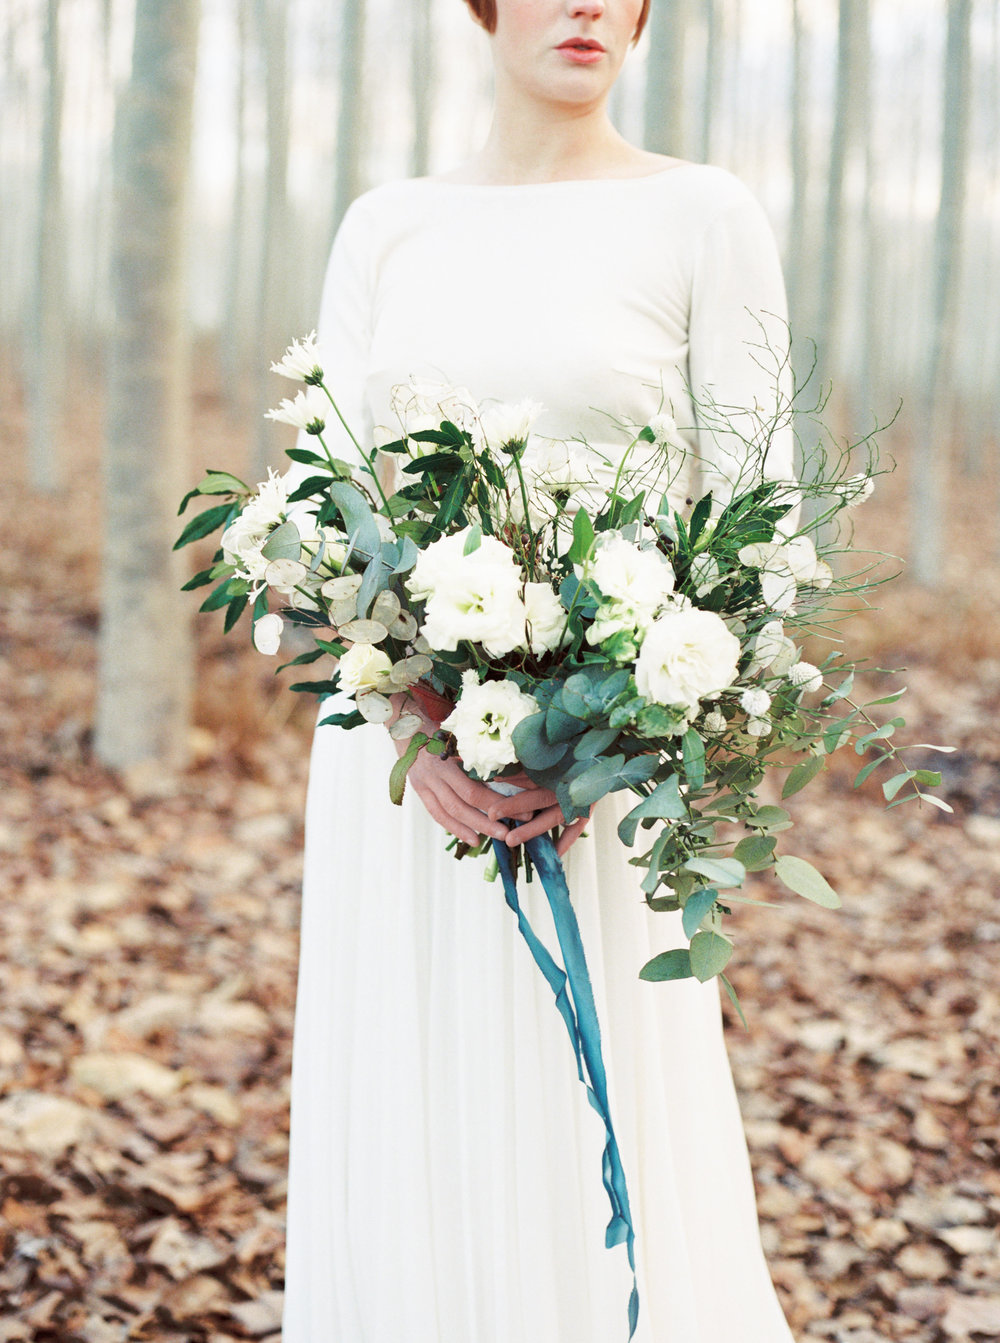 winter texture wedding bouquet with white and green flowers.jpg